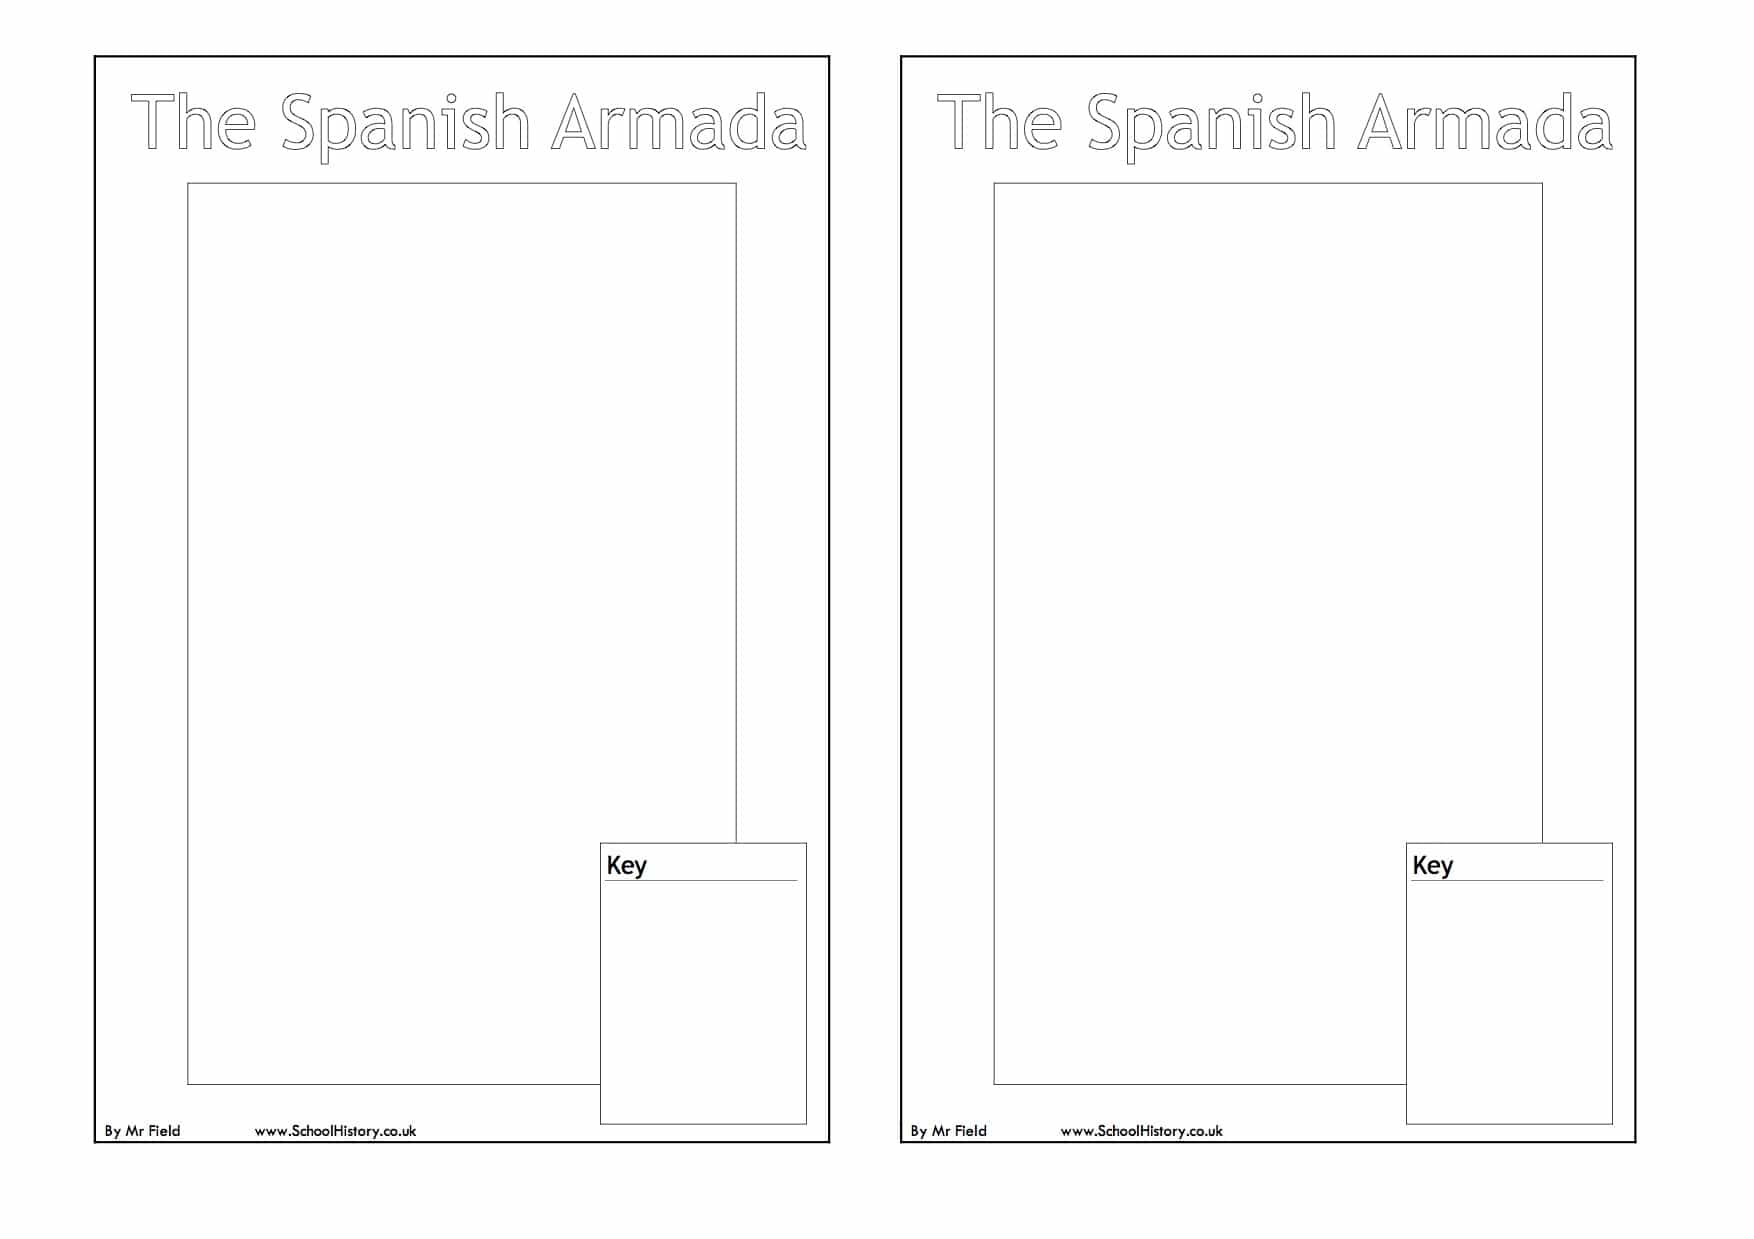 Spanish Armada Map Worksheet